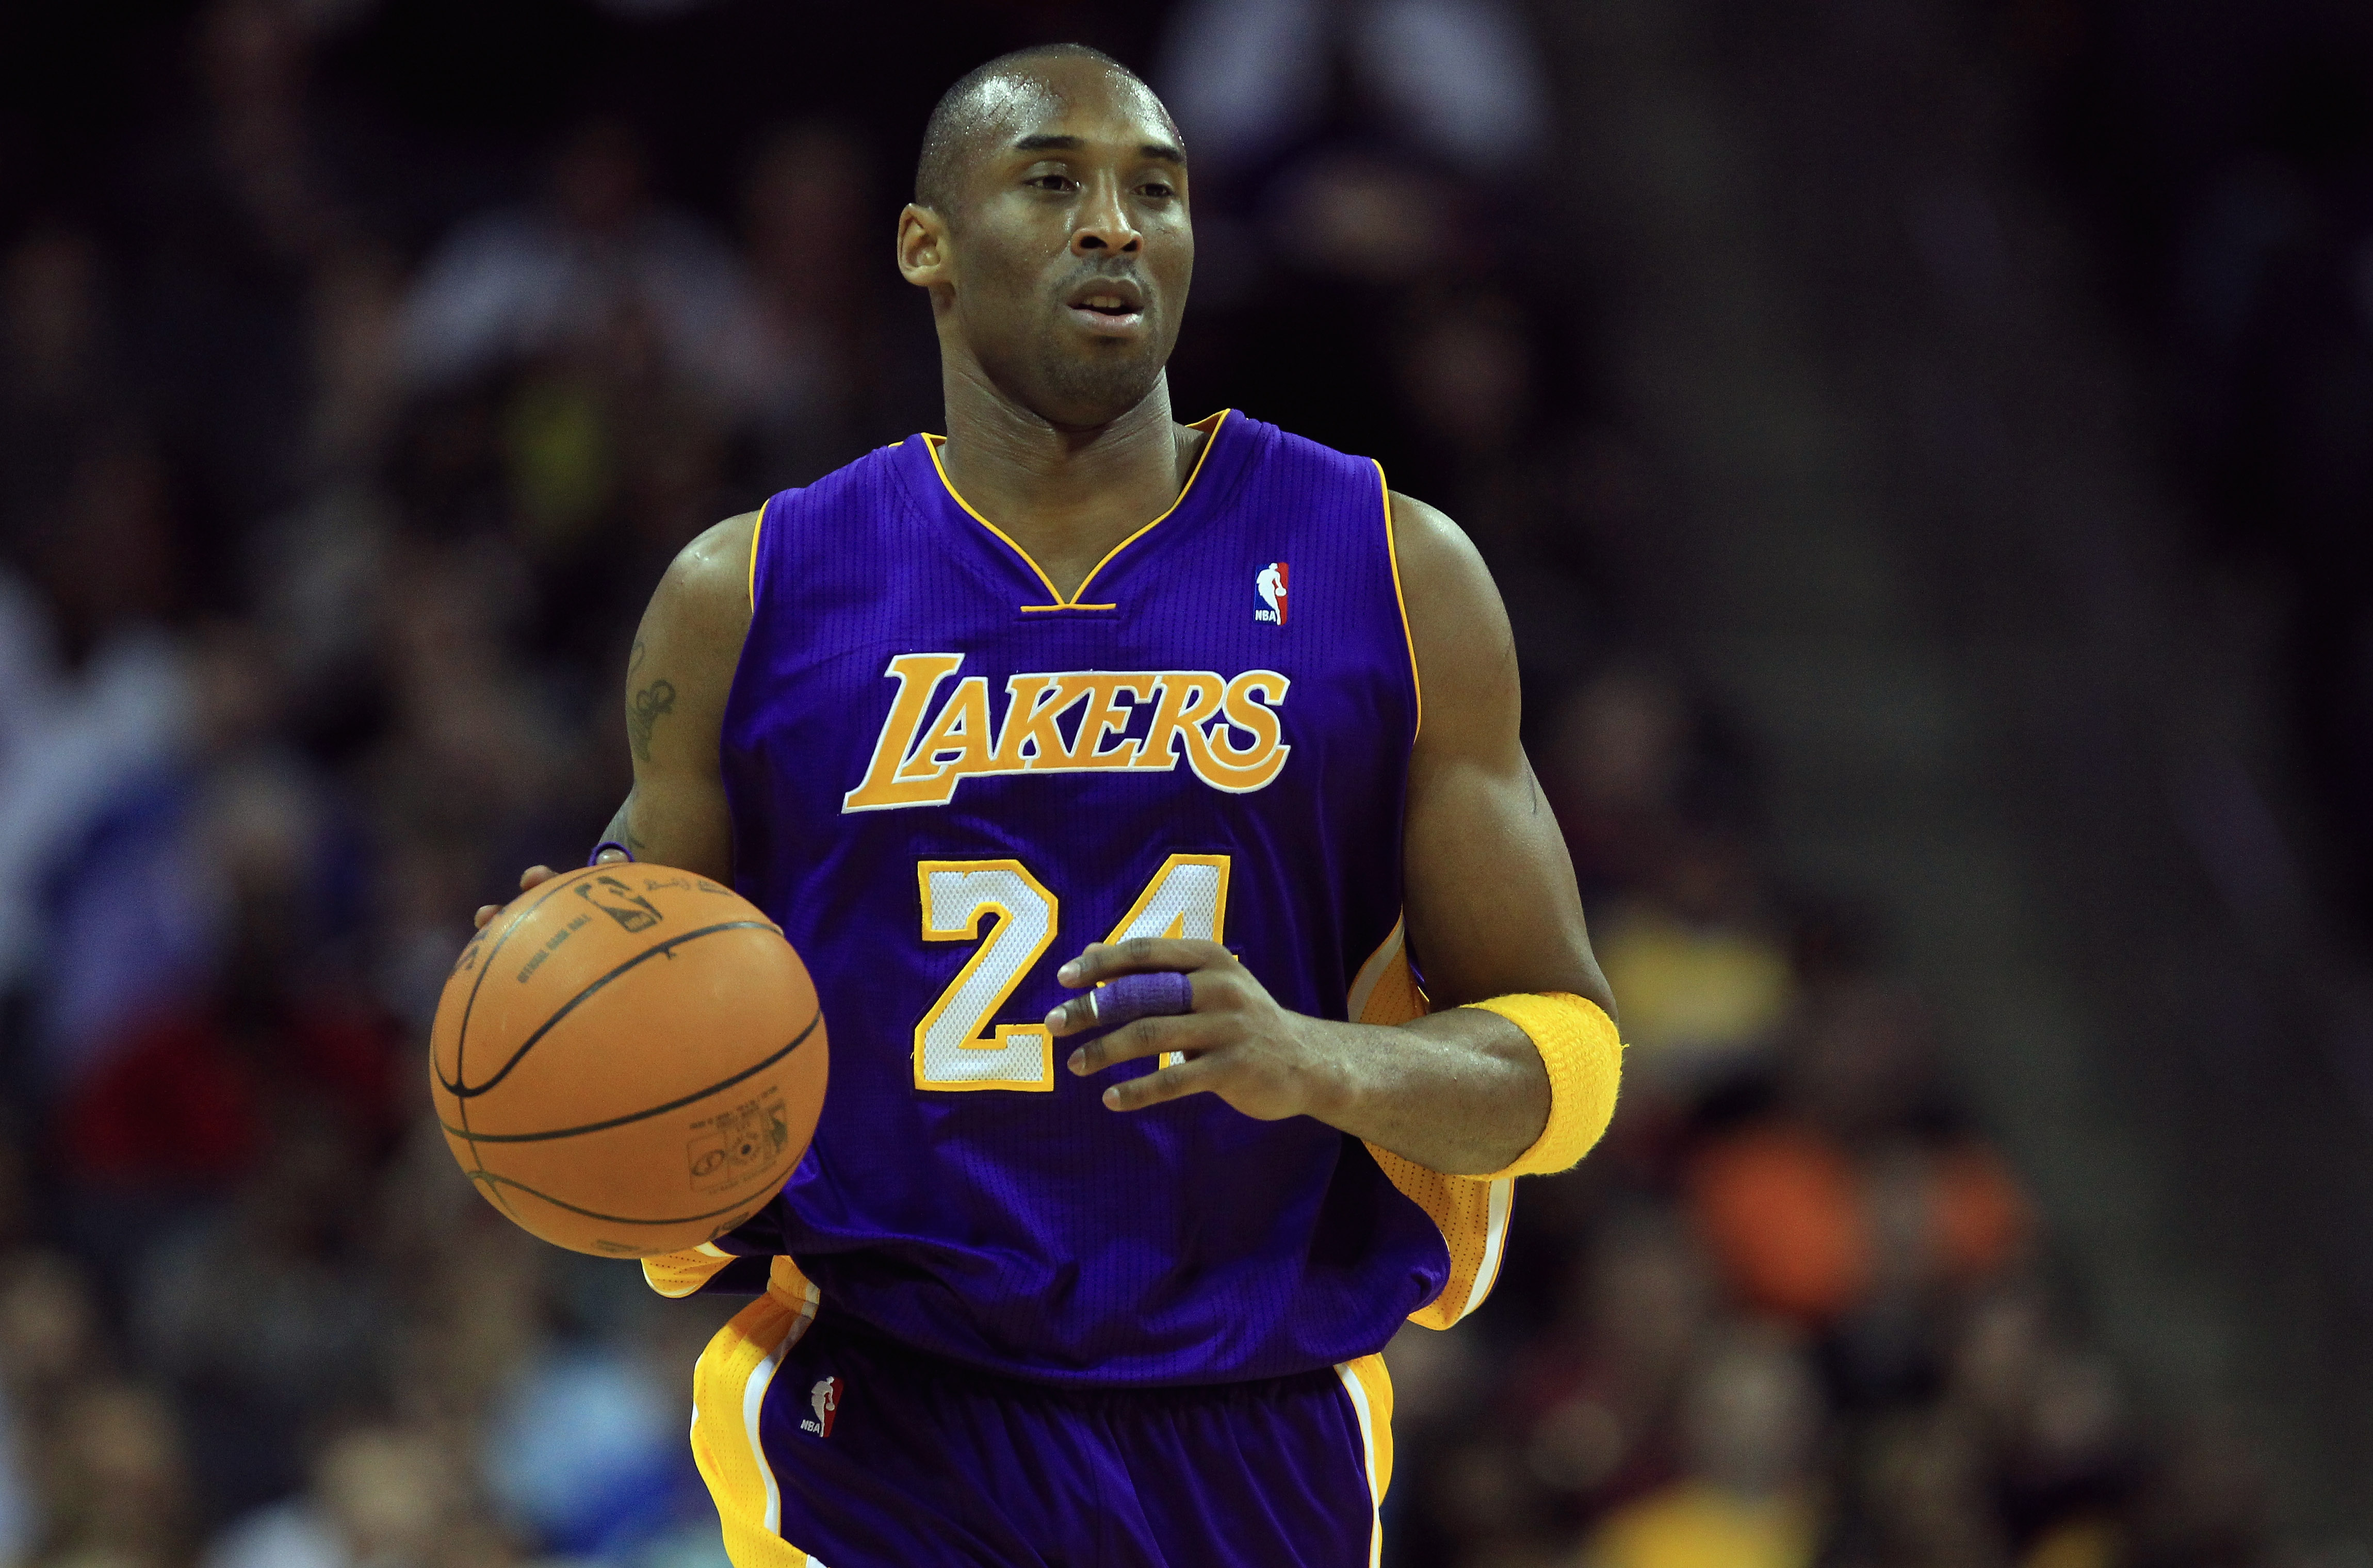 de5f9e417cd CHARLOTTE, NC - FEBRUARY 14: Kobe Bryant #24 of the Los Angeles Lakers